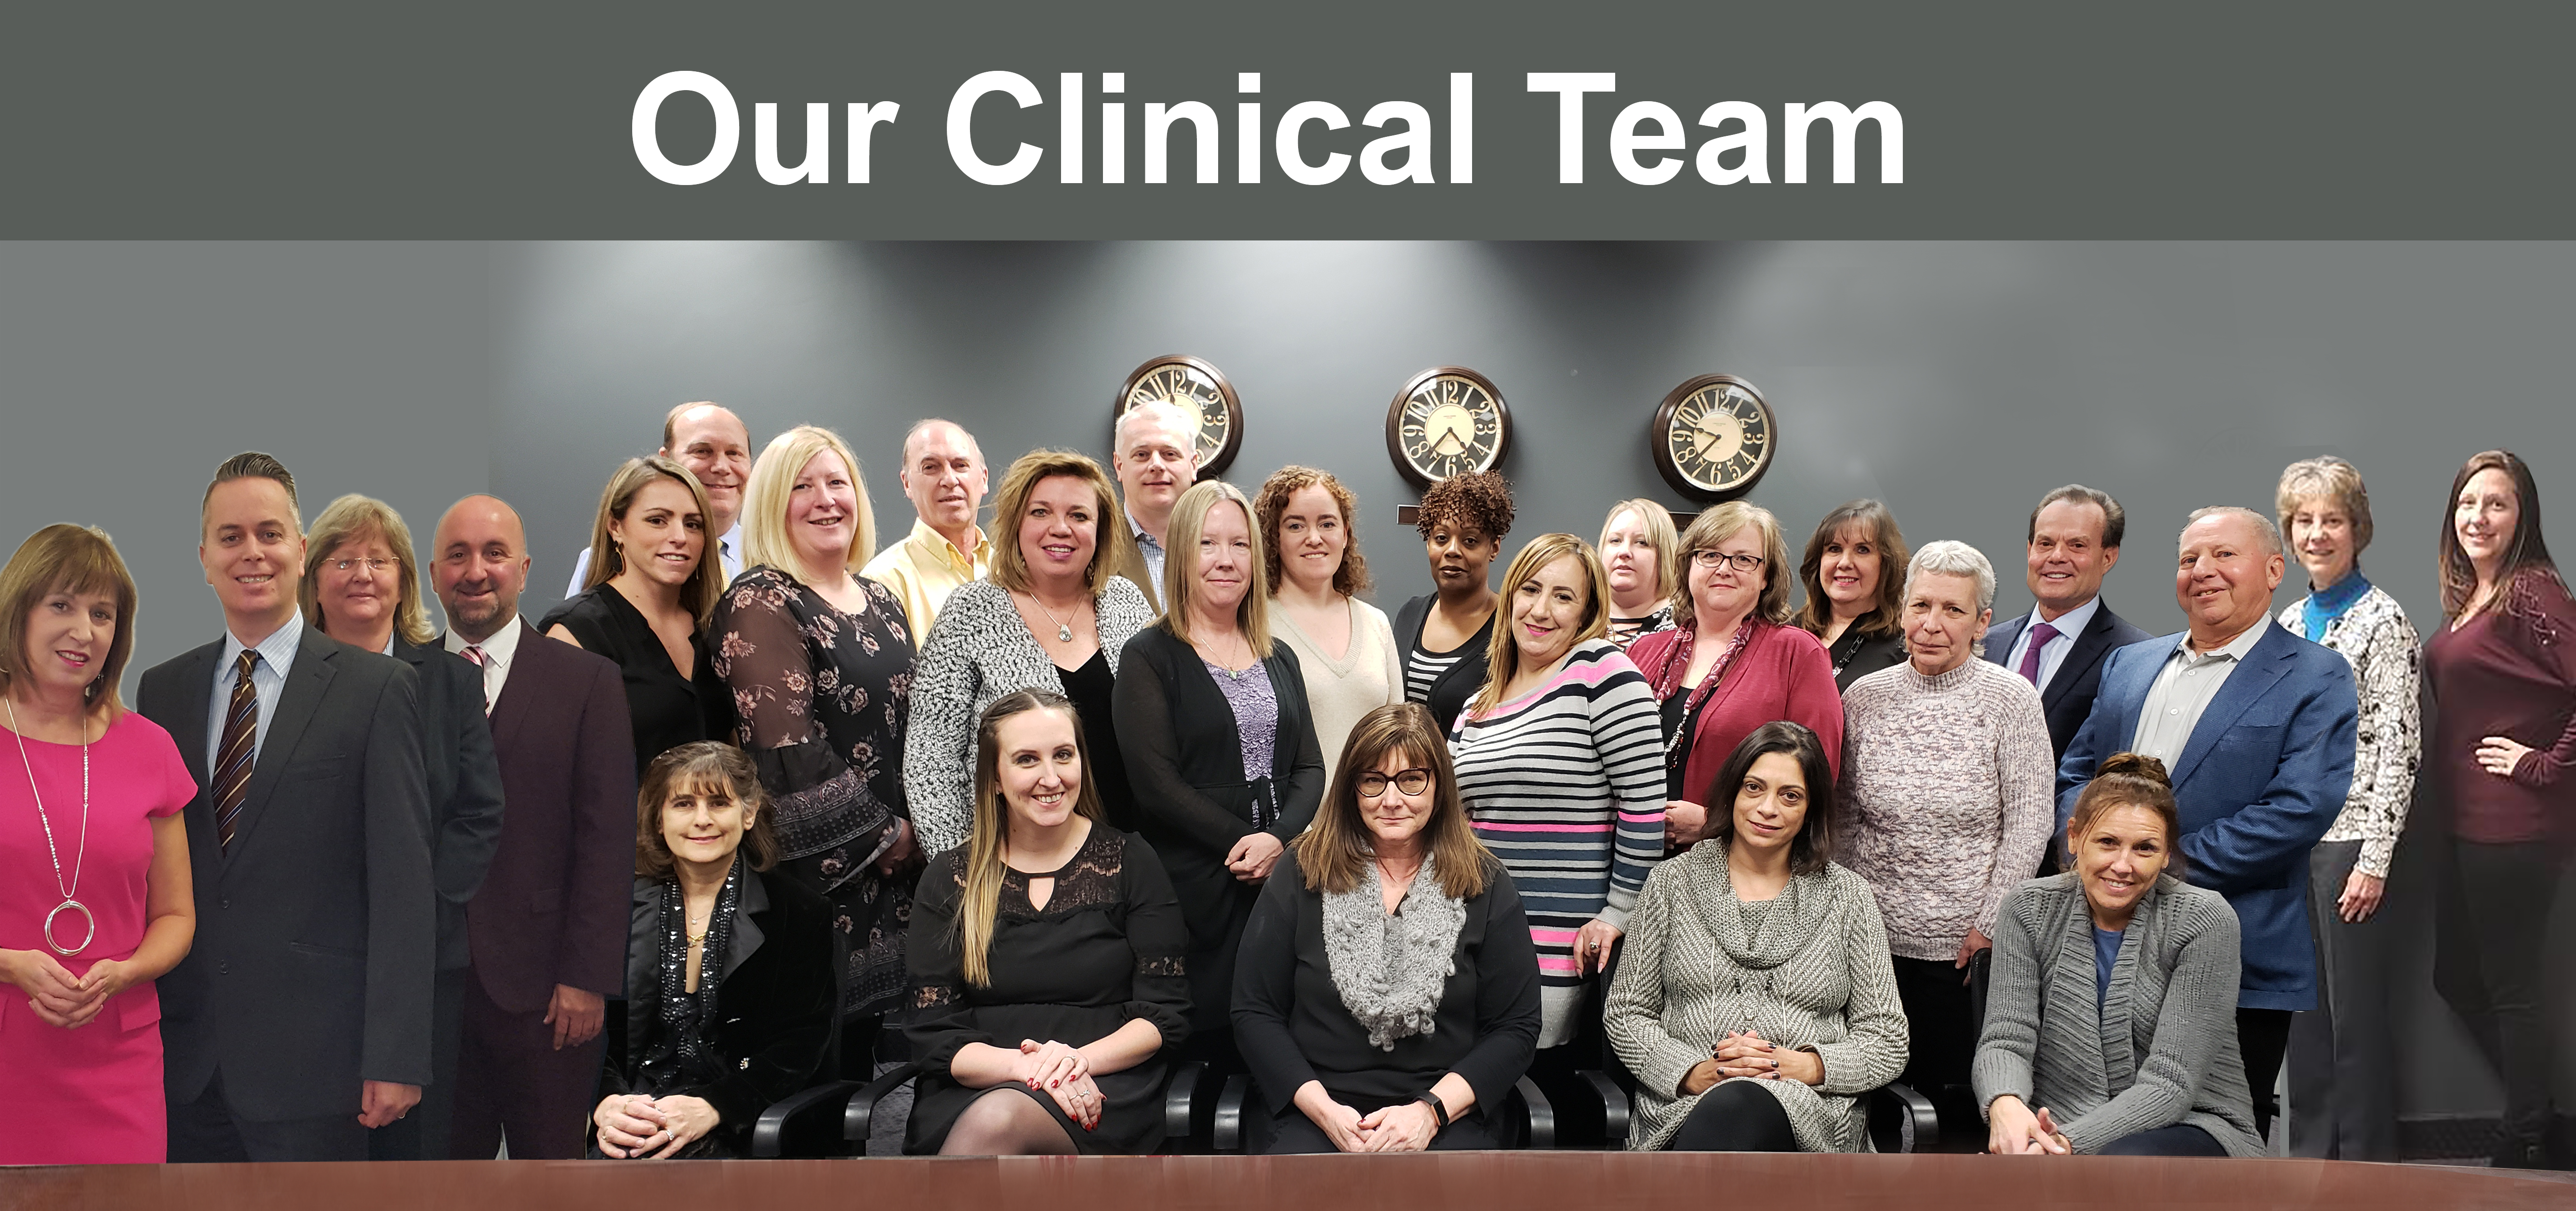 Colpitts Clinical Team Photo